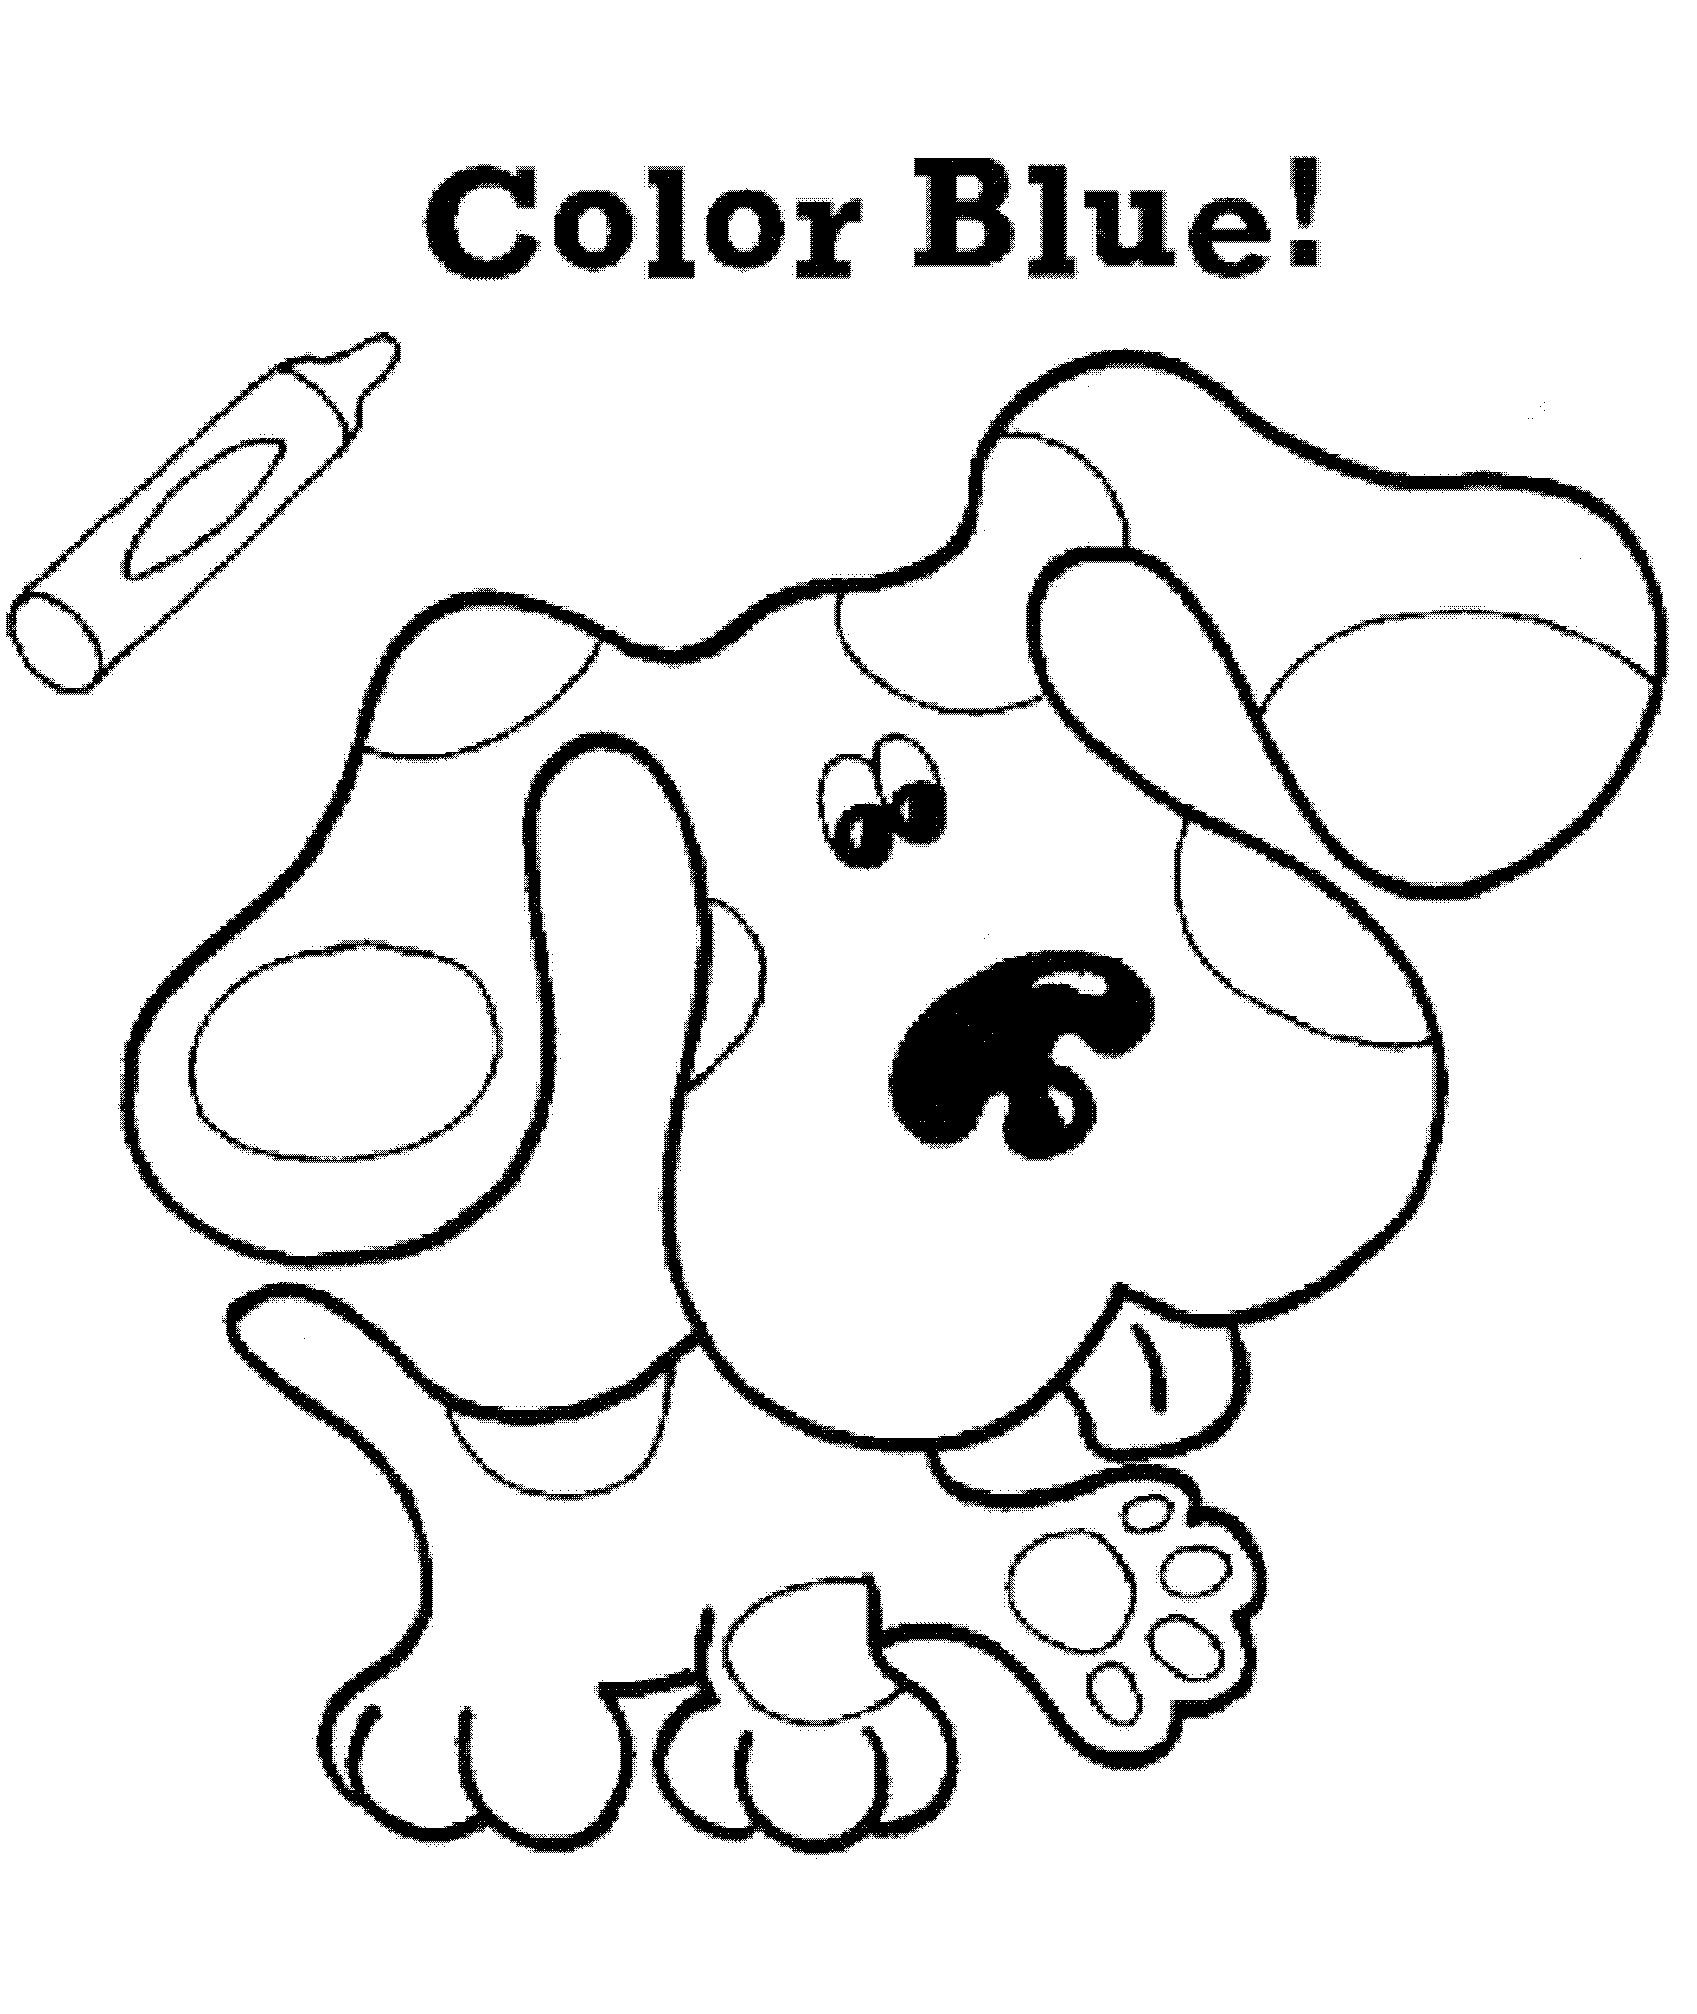 Blues Clues Notebook Coloring Pages Kids Coloring Books Cartoon Coloring Pages Free Printable Coloring Pages